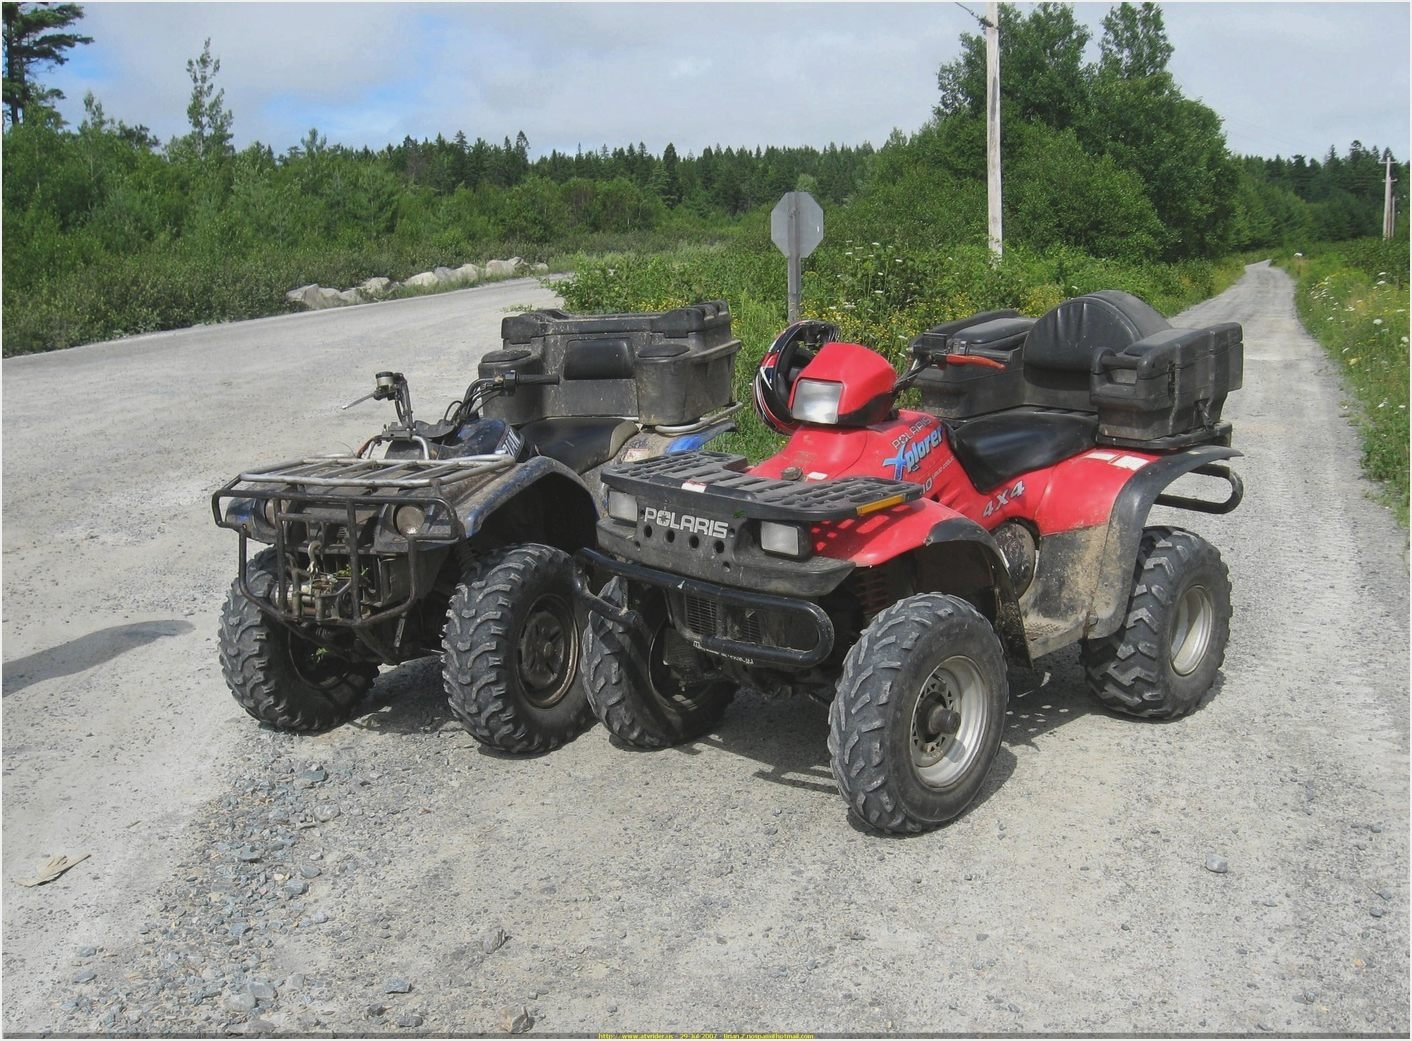 Polaris Xplorer 400 2000 images #120859